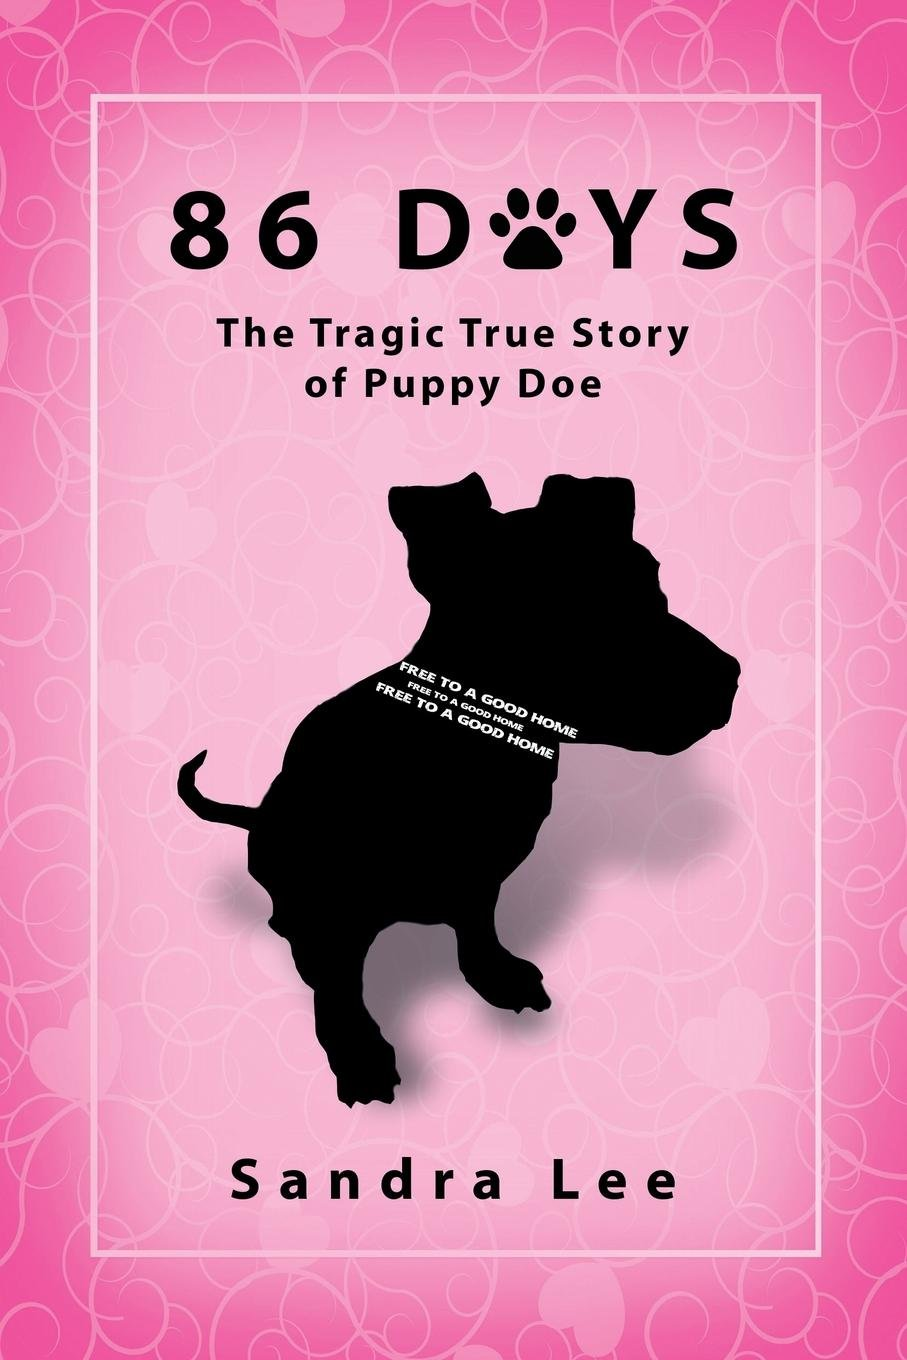 Amazon.com: 86 Days: The Tragic True Story of Puppy Doe (9781632637659):  Sandra Lee: Books